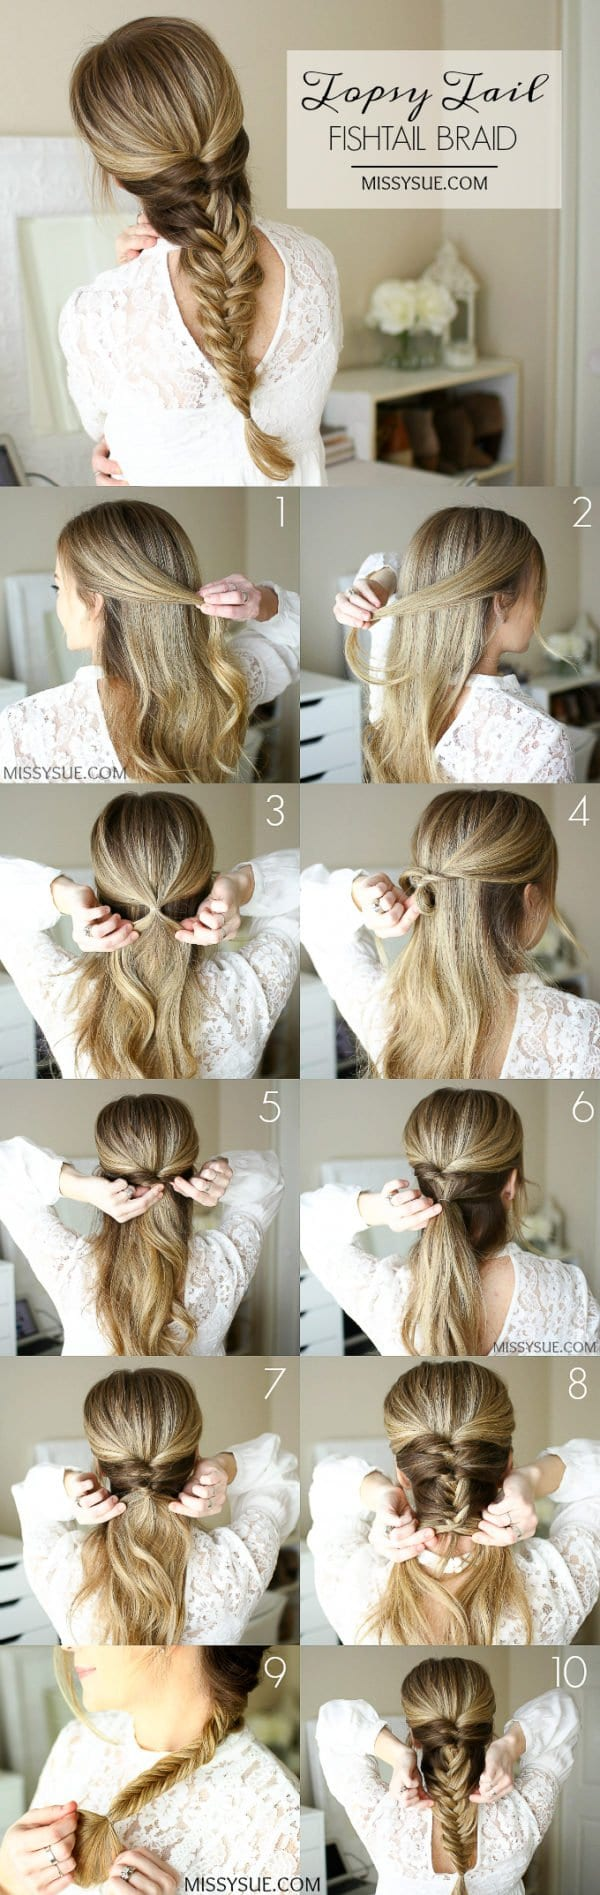 Easy Hairstyles Tutorials For Busy Women That Will Take You Less Than 5 Minutes